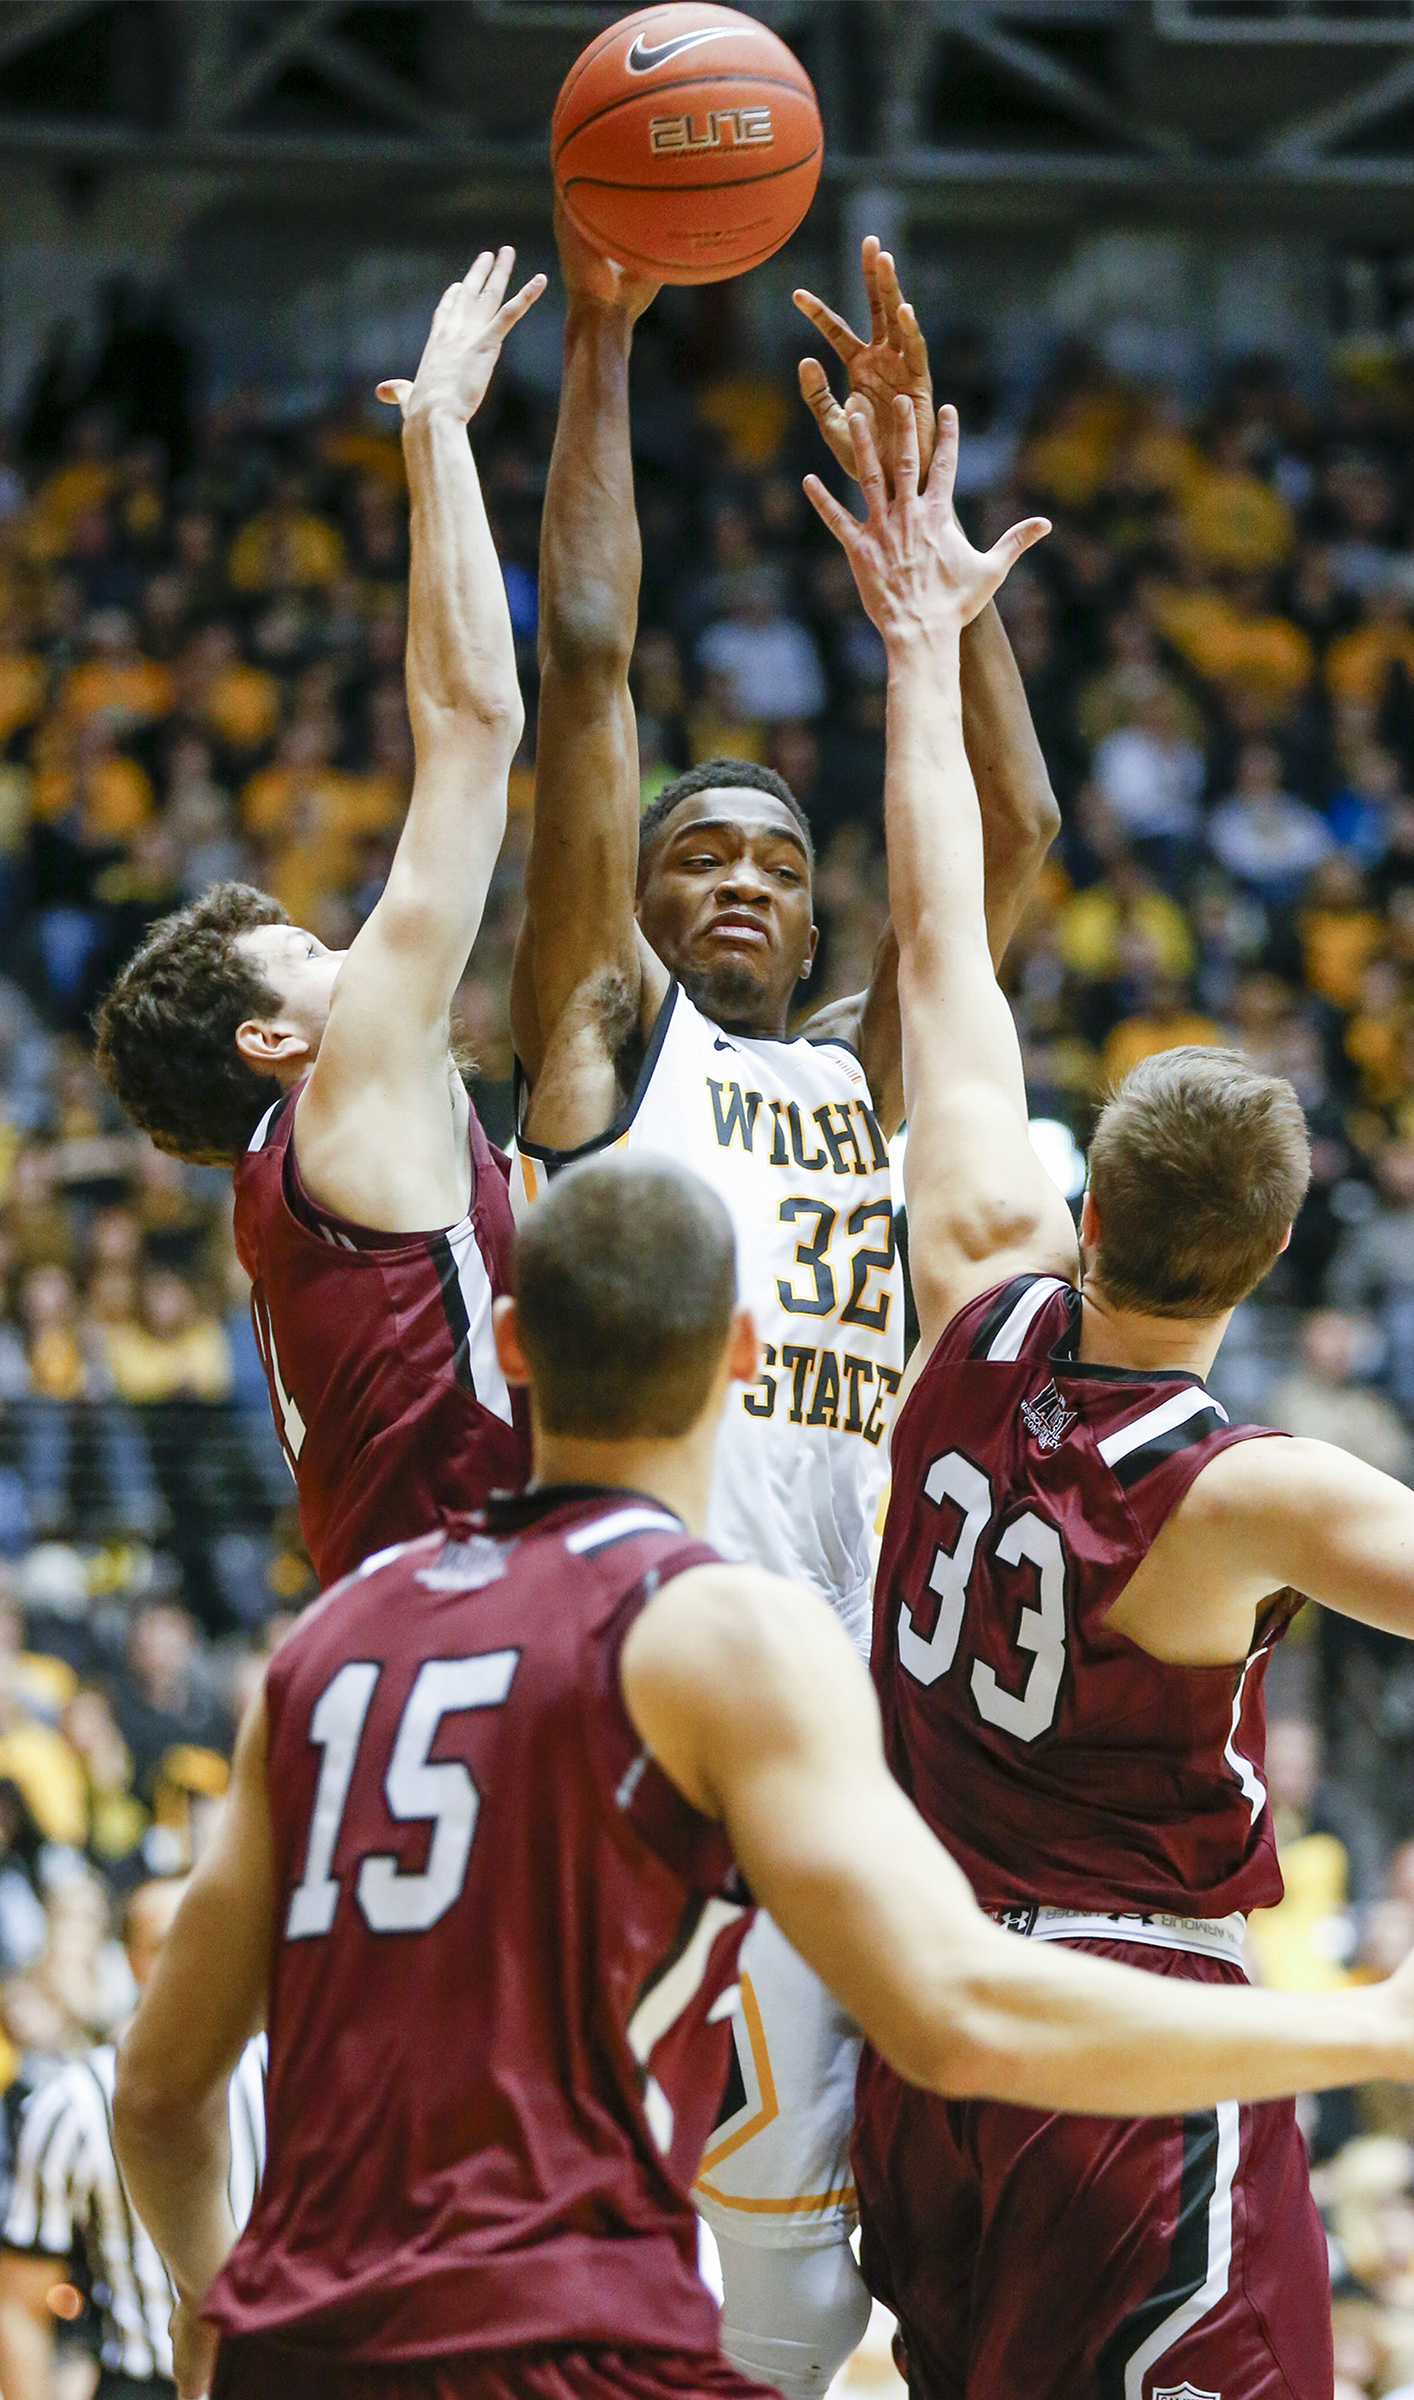 Wichita State's Markis McDuffie (32) dishes off against Southern Illinois during an NCAA college basketball game Wednesday, Feb. 3, 2016, in Wichita, Kan. (Fernando Salazar/The Wichita Eagle via AP)